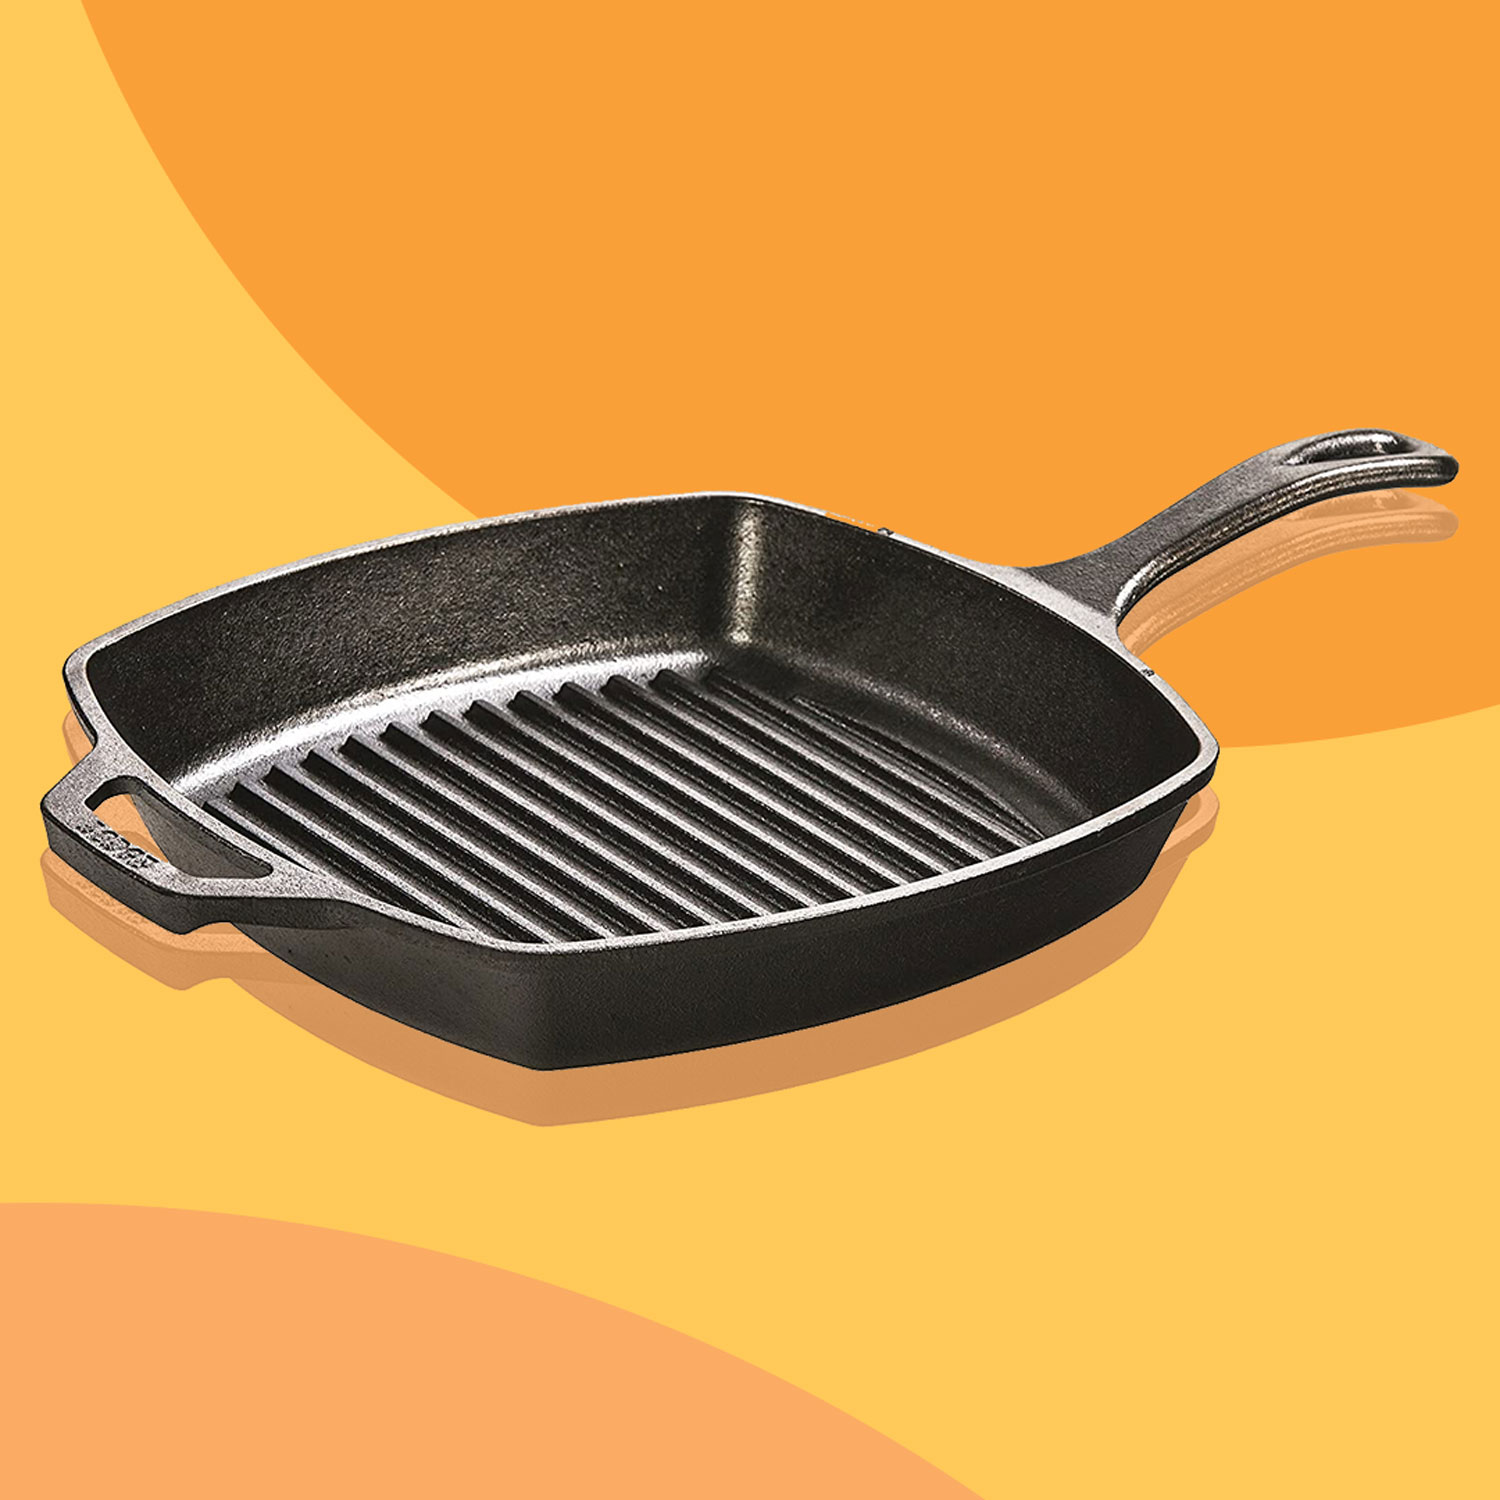 Amazon Is Having a *Huge* Sale on Lodge Cast-Iron Cookware Right Now—Here's What to Buy